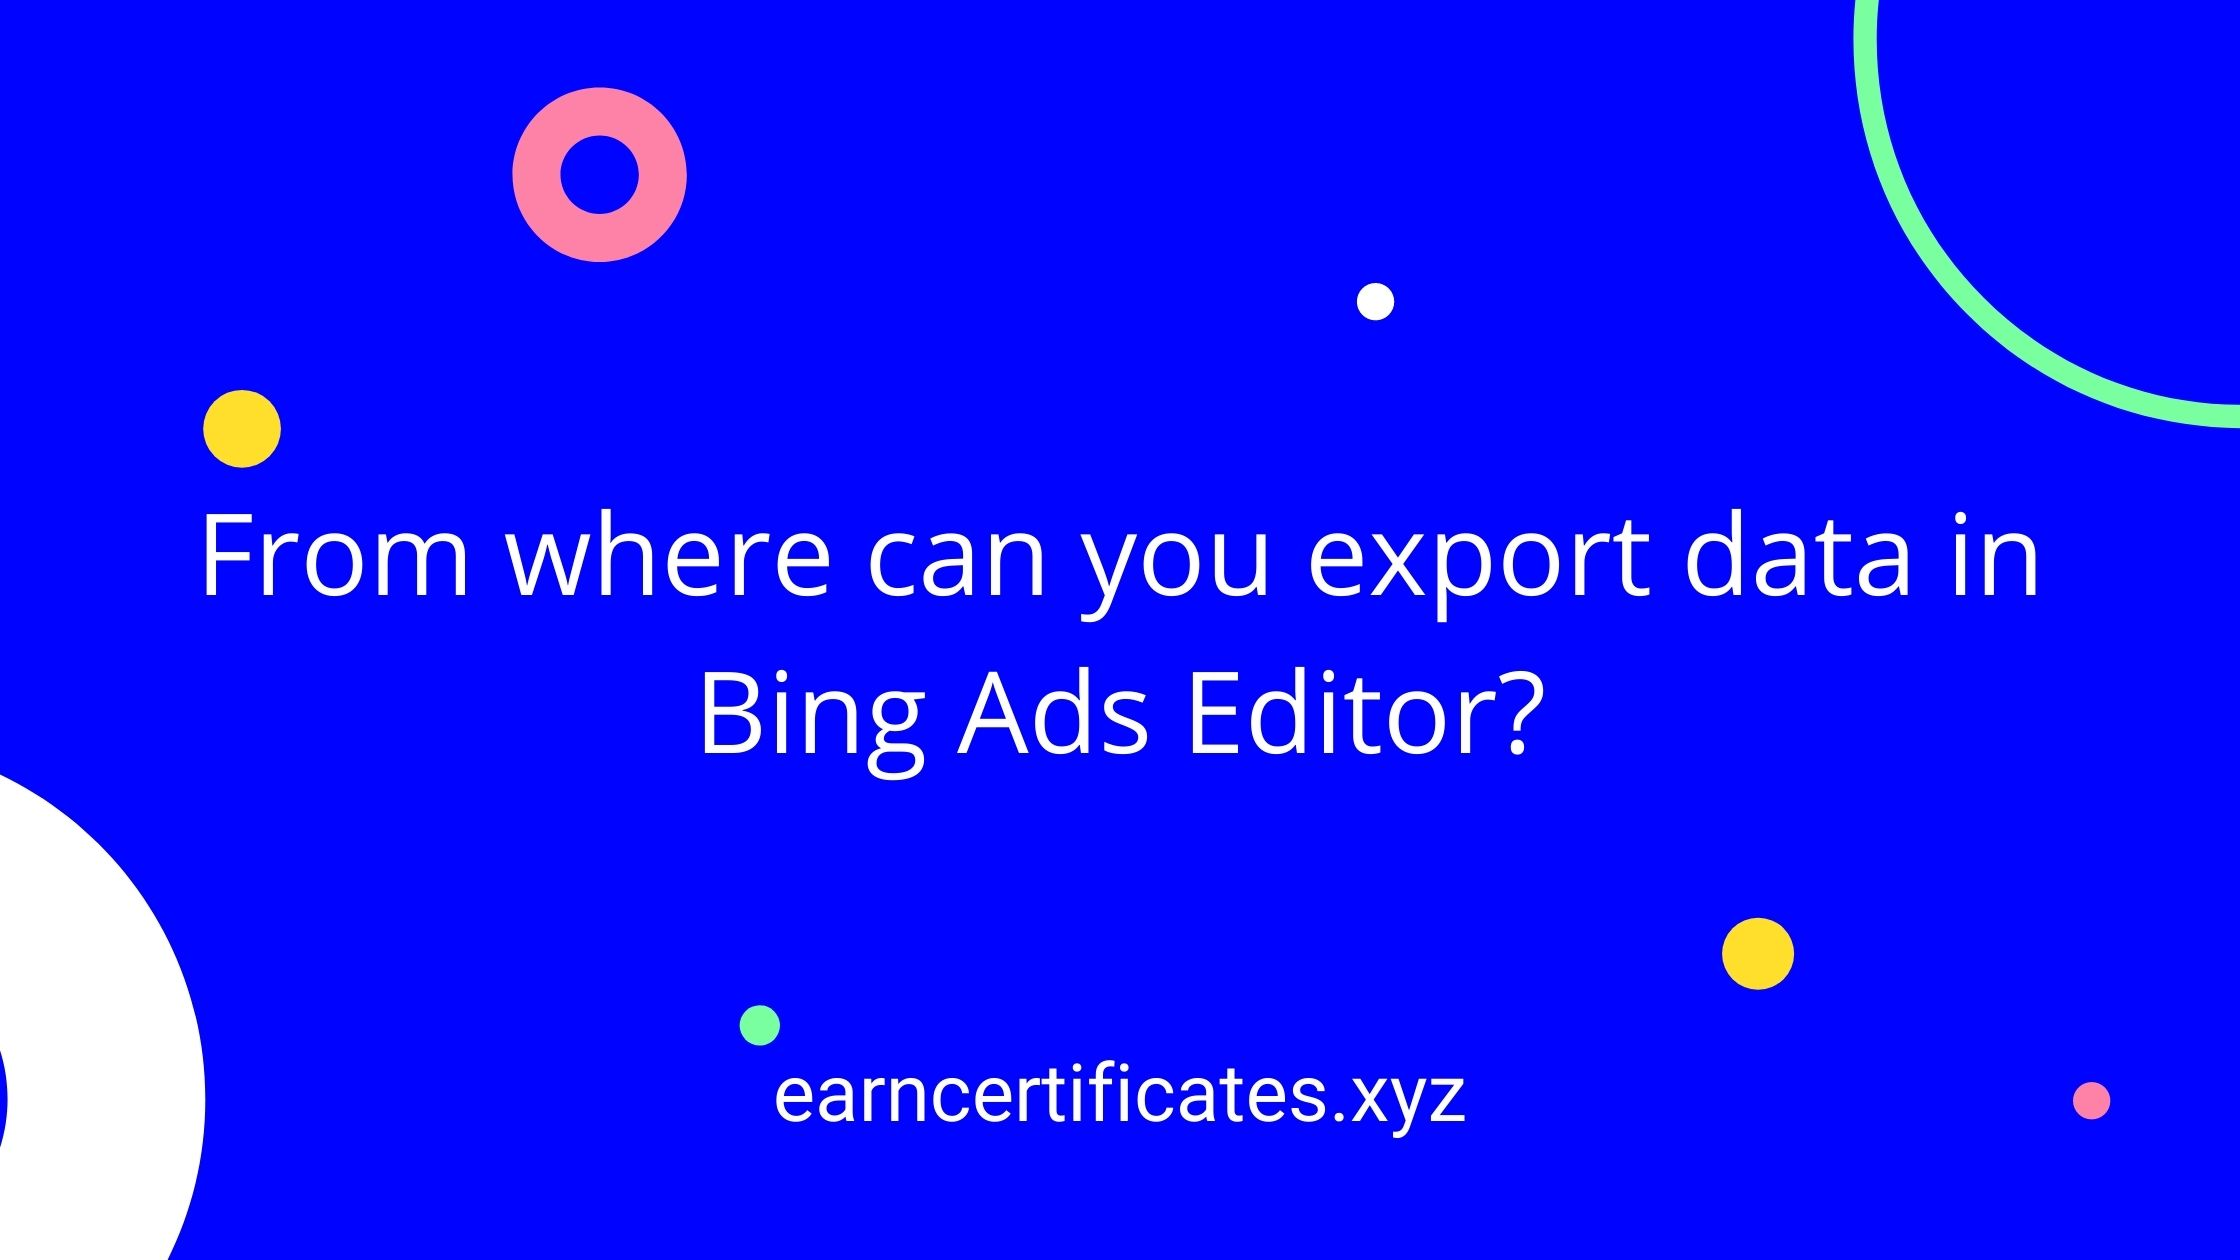 From where can you export data in Bing Ads Editor?